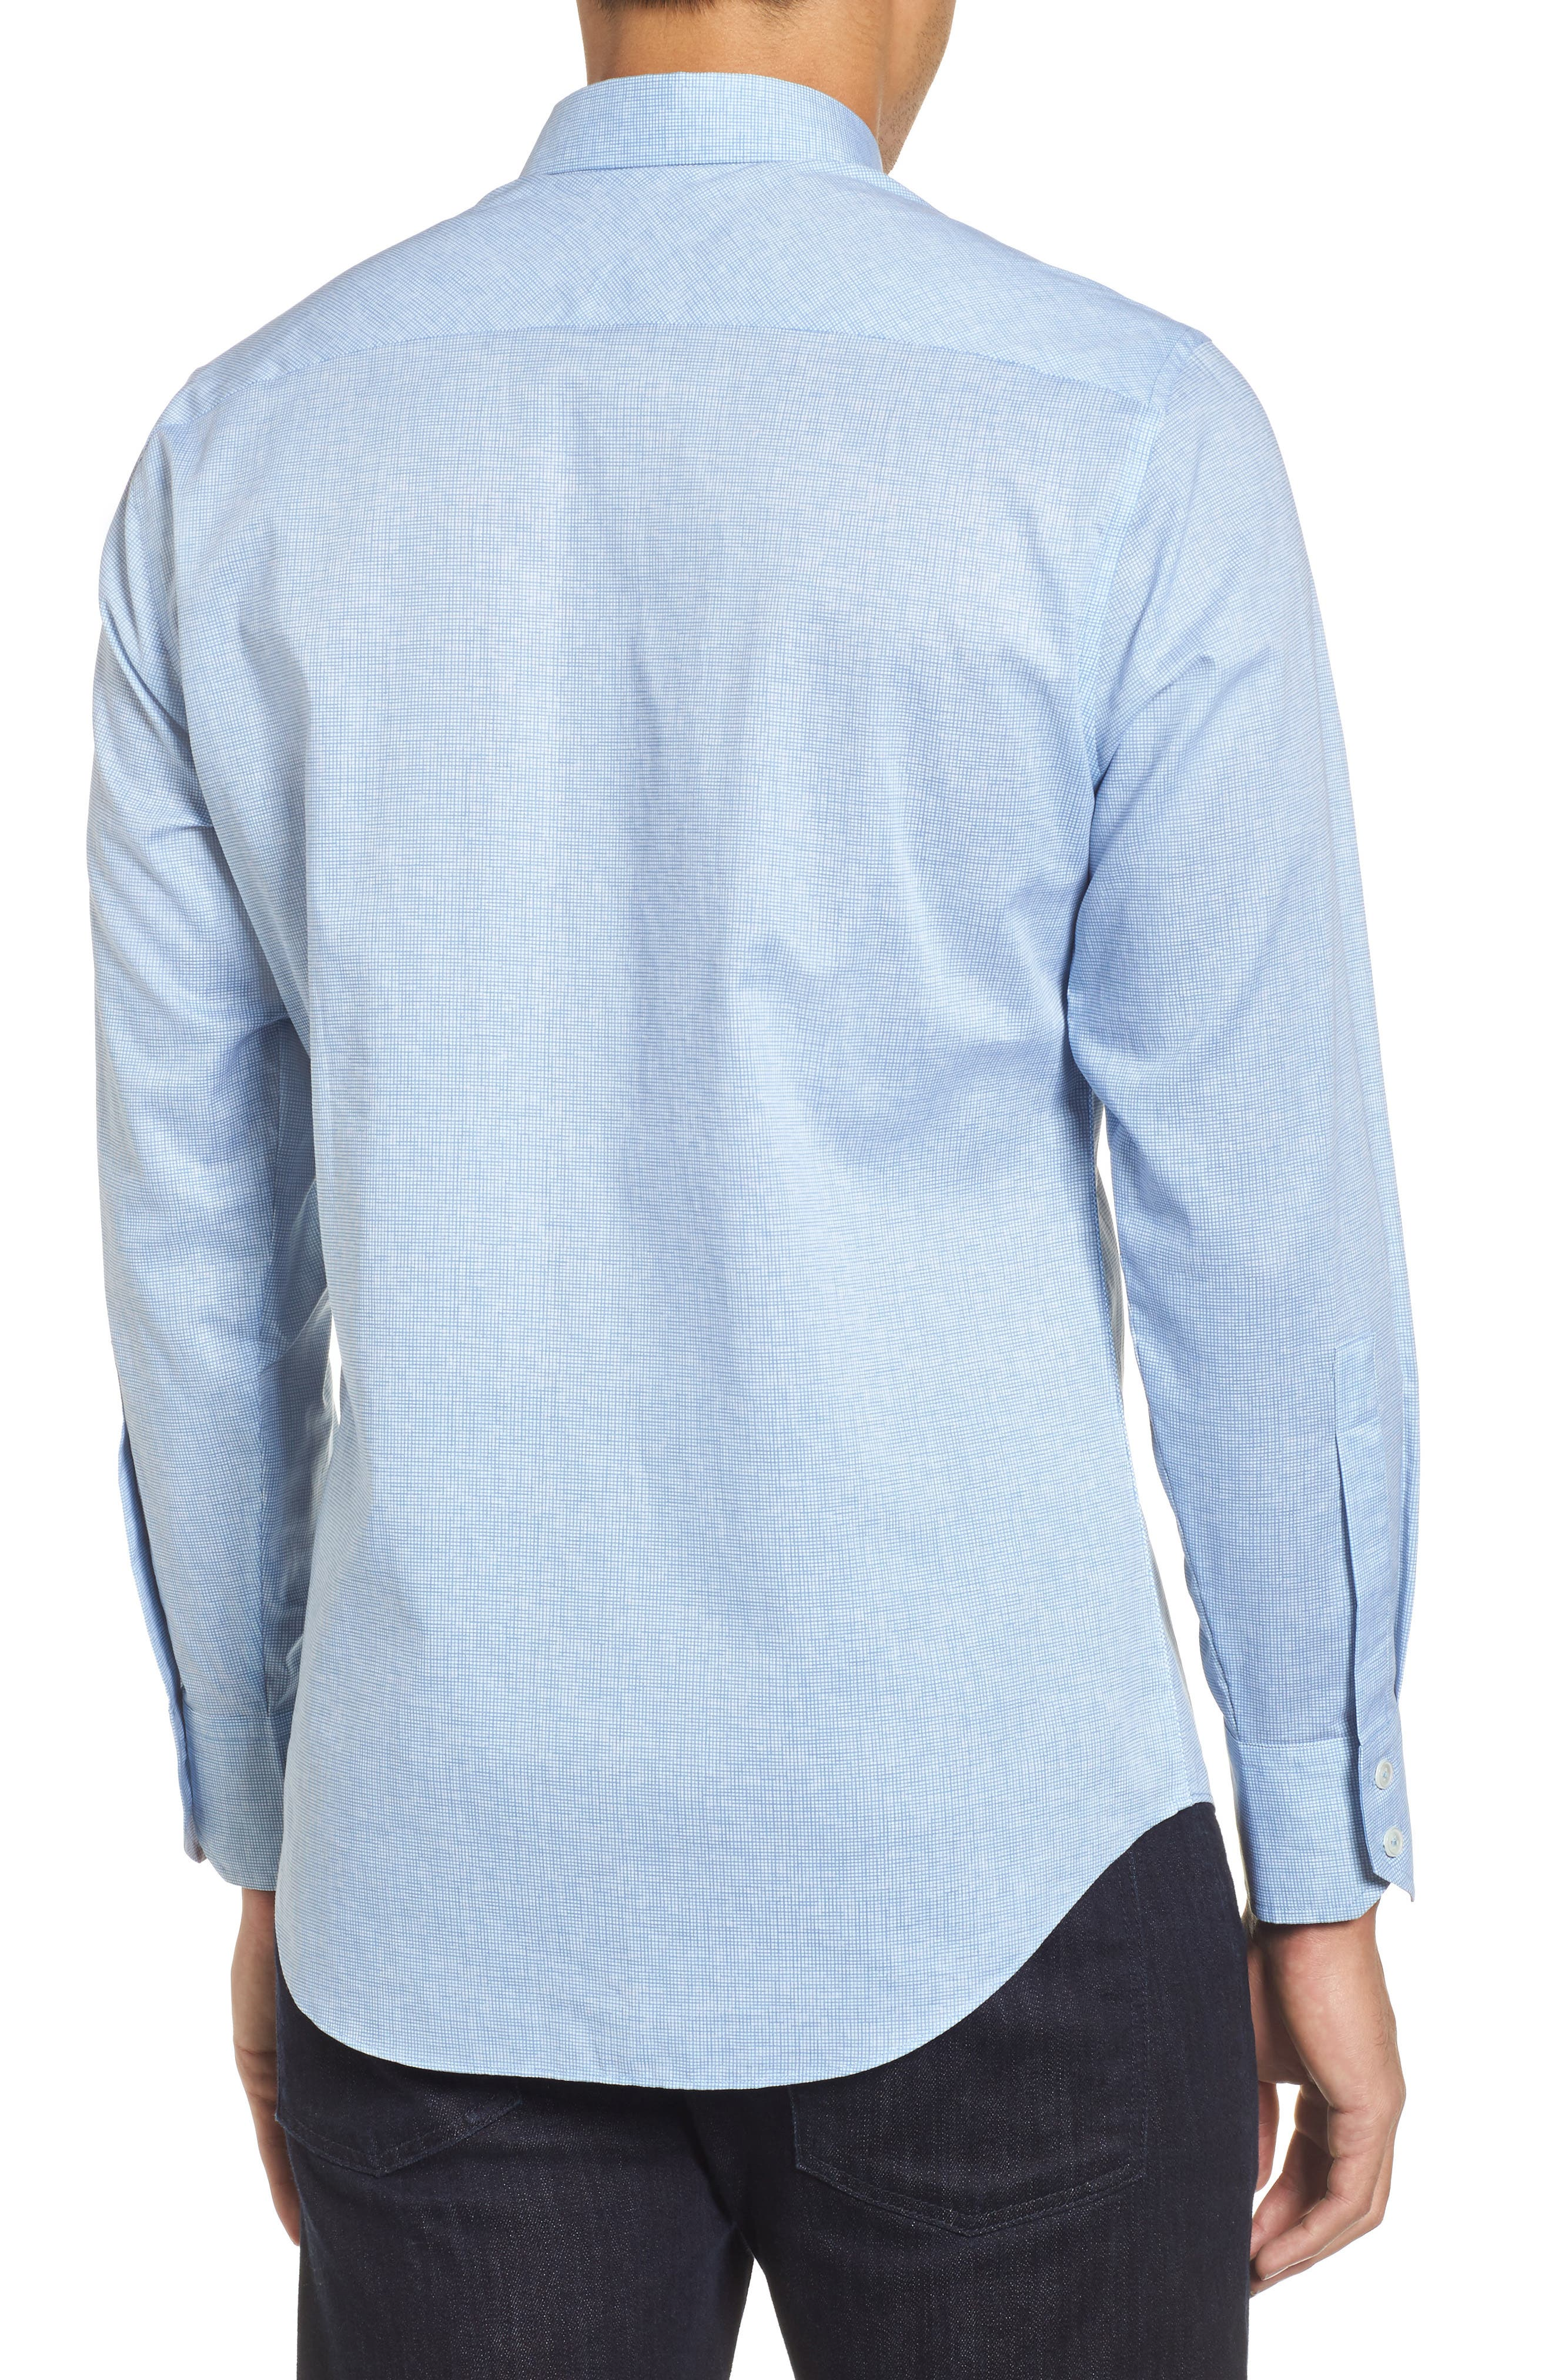 Forrest Textured Woven Sport Shirt,                             Alternate thumbnail 2, color,                             Ice Blue